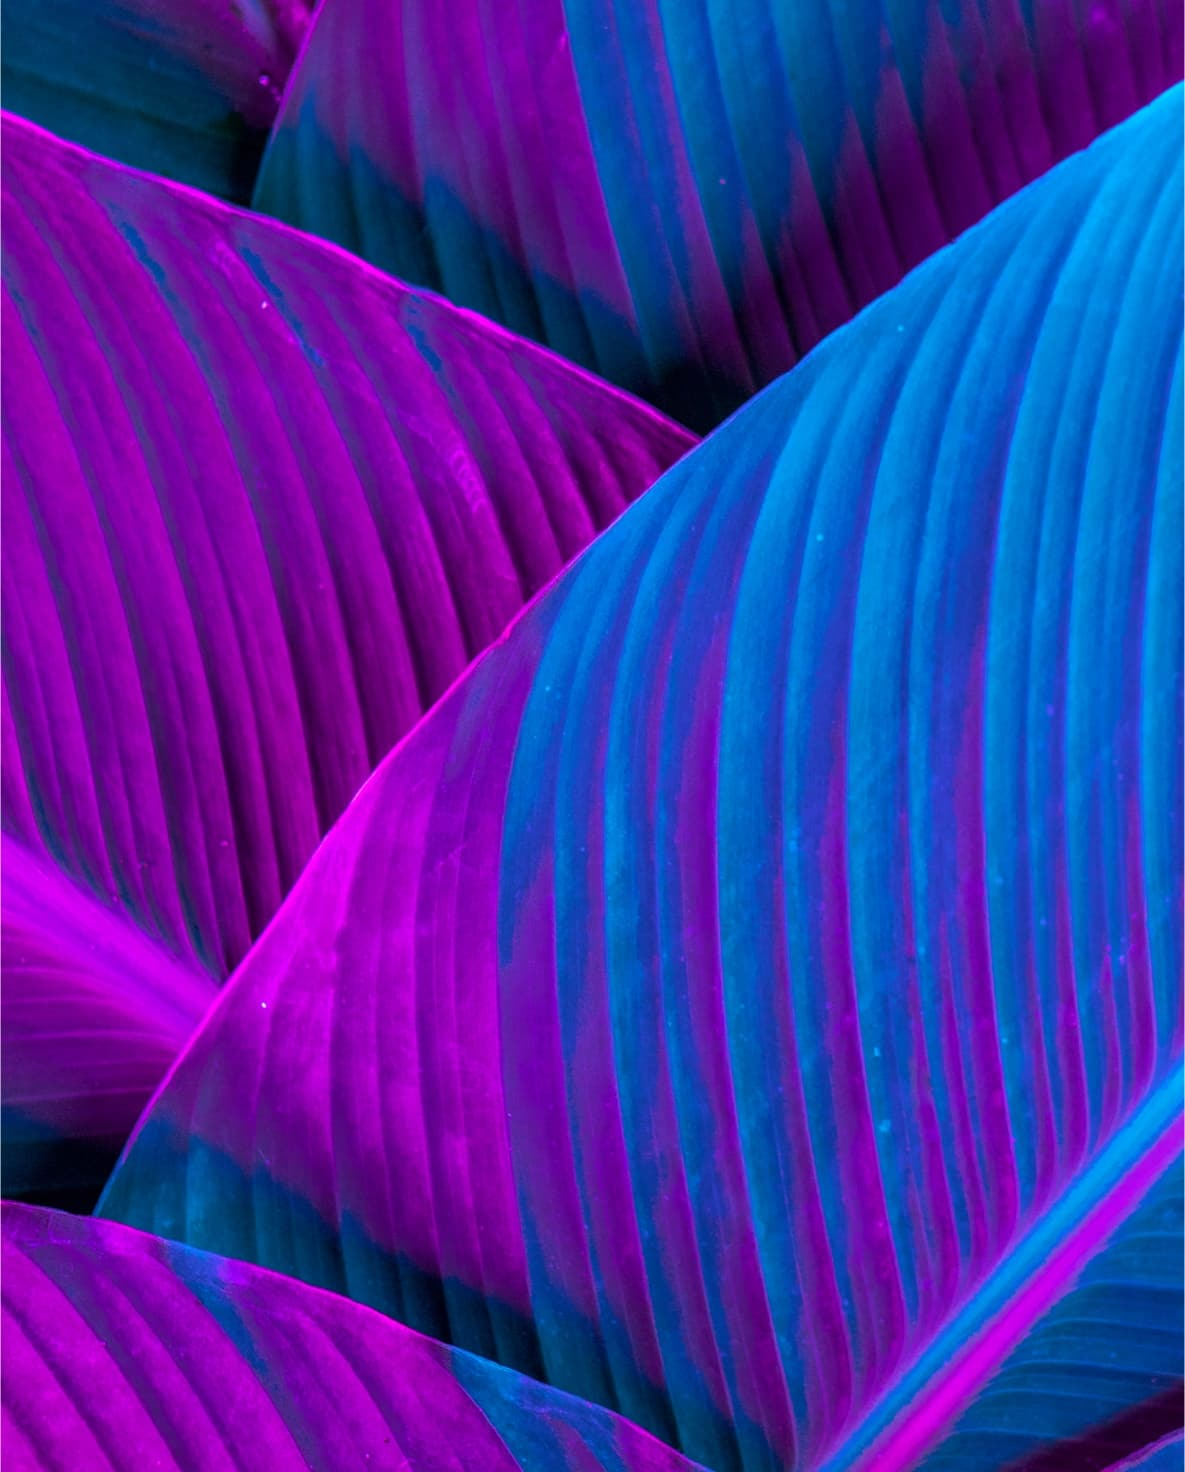 Large vibey leaves in purple and blue